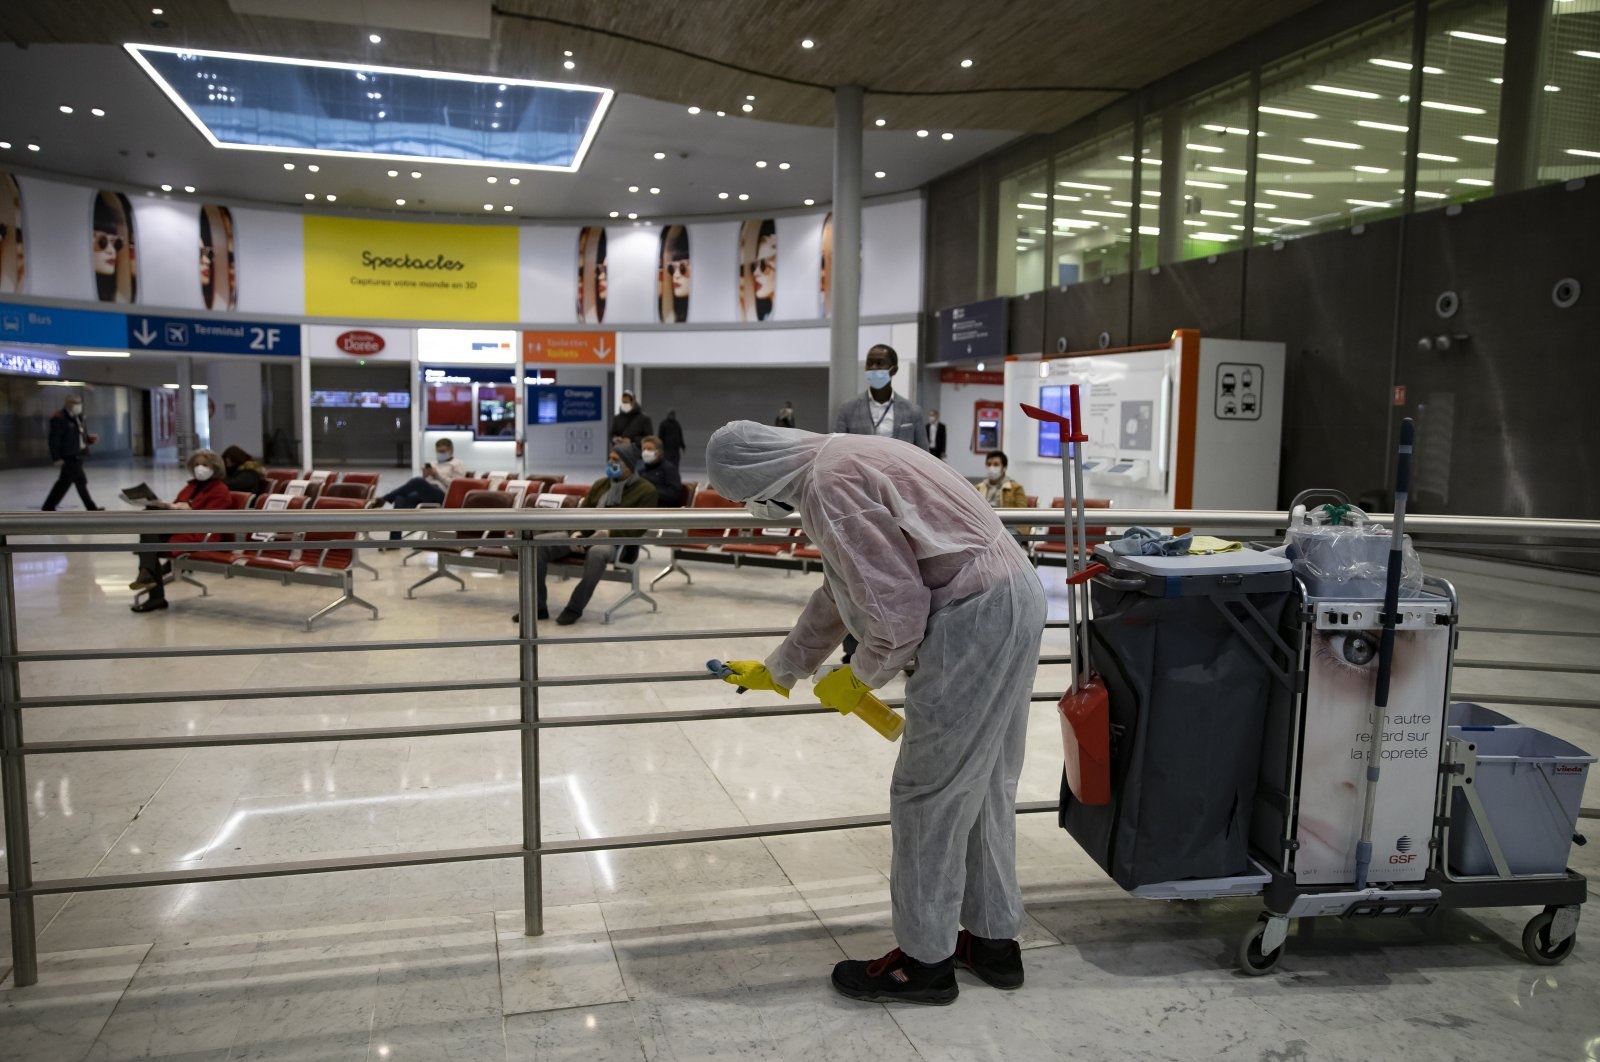 A cleaning personnel disinfects surfaces at Terminal 2 of Charles de Gaulle international airport in Roissy, north of Paris, Thursday, May 14, 2020. (AP Photo)